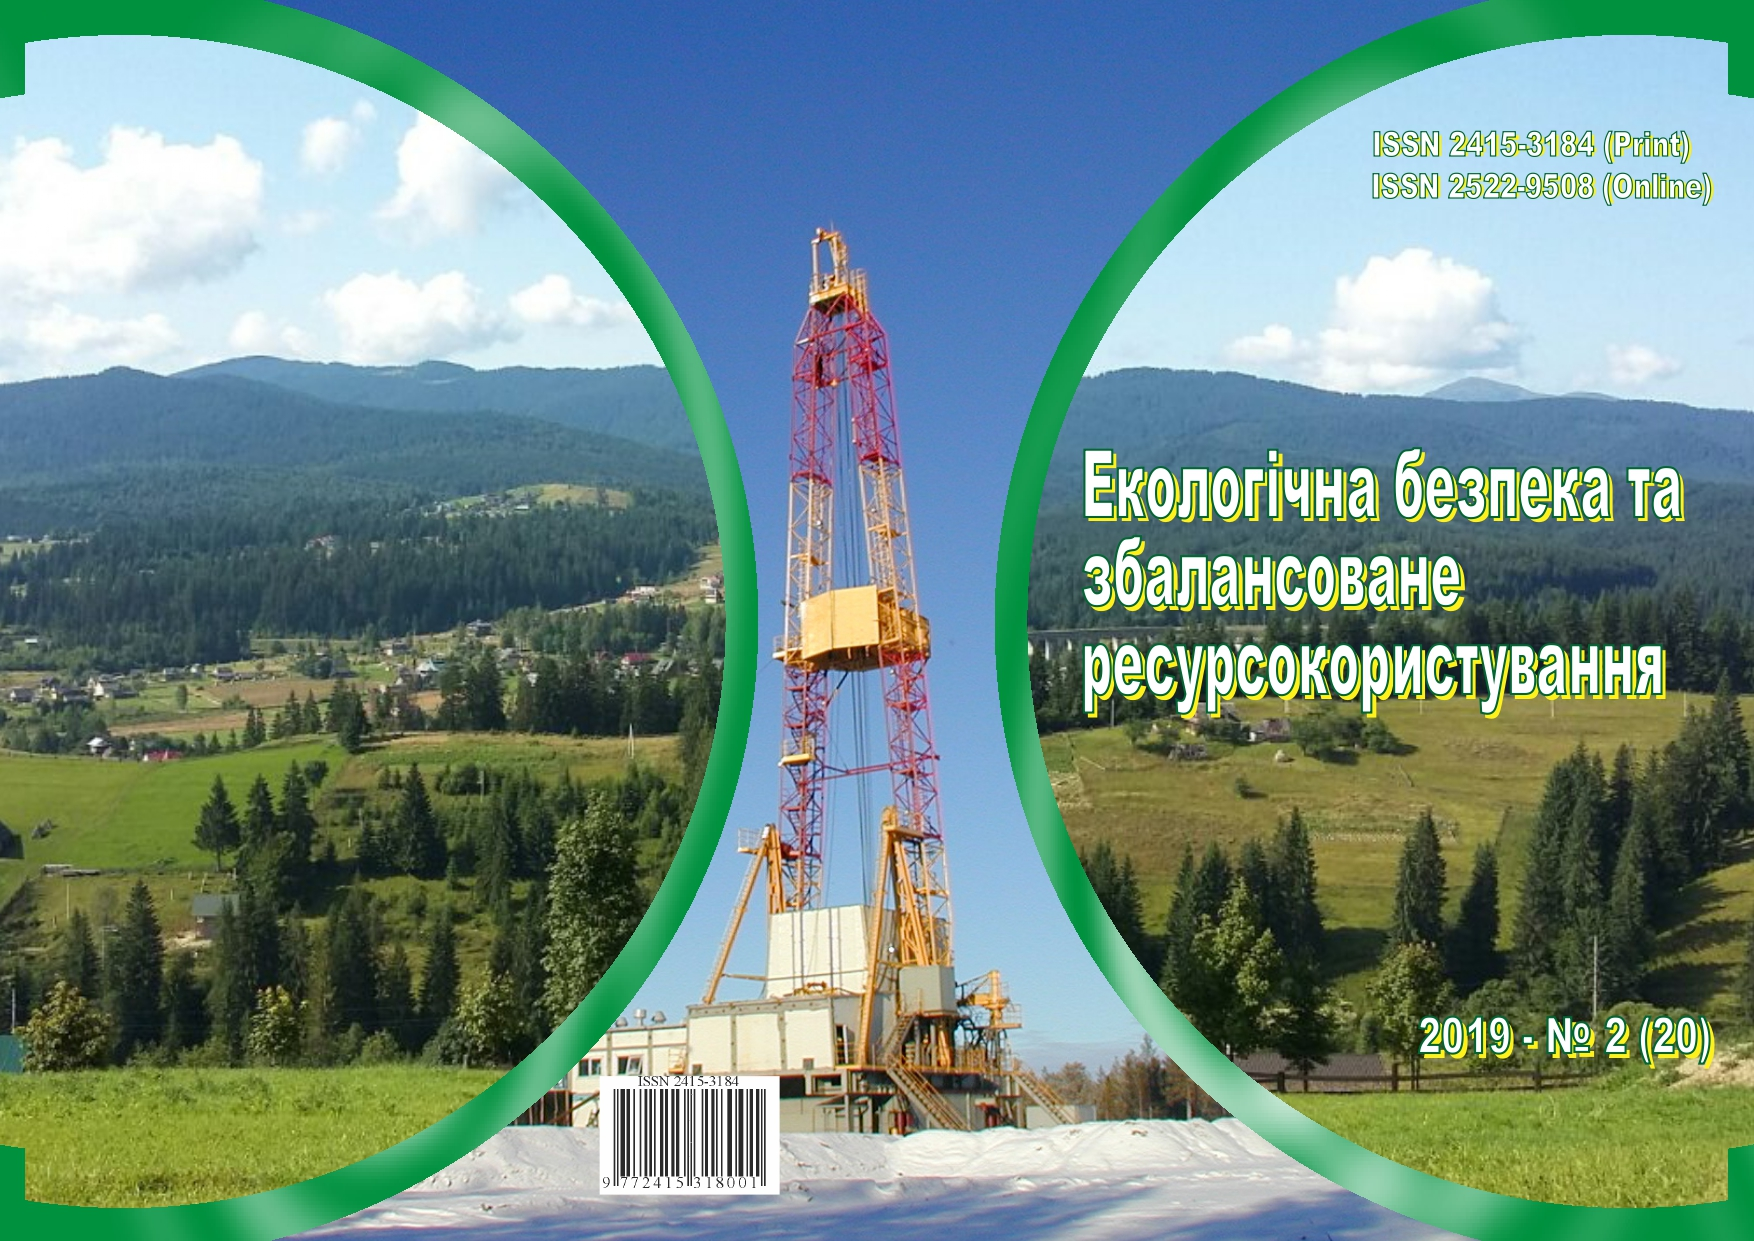 View No. 19(2) (2019): Ecological Safety and Balanced Use of Resources